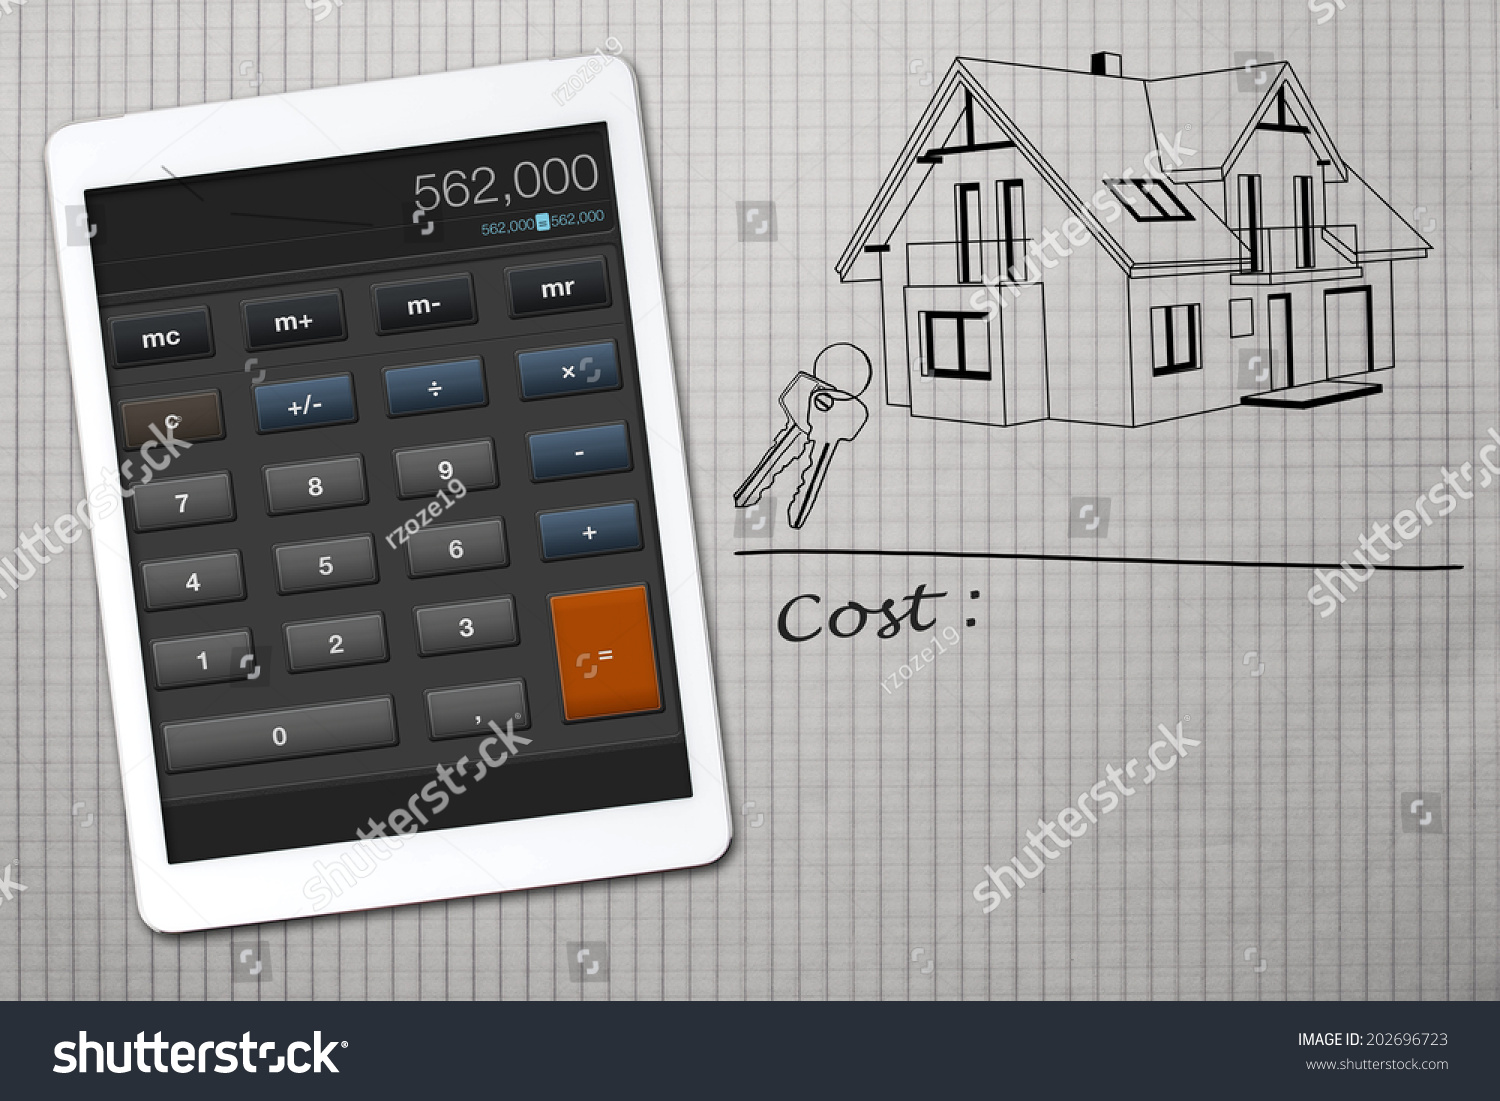 Home construction cost calculator stock photo 202696723 for Cost to build new home calculator